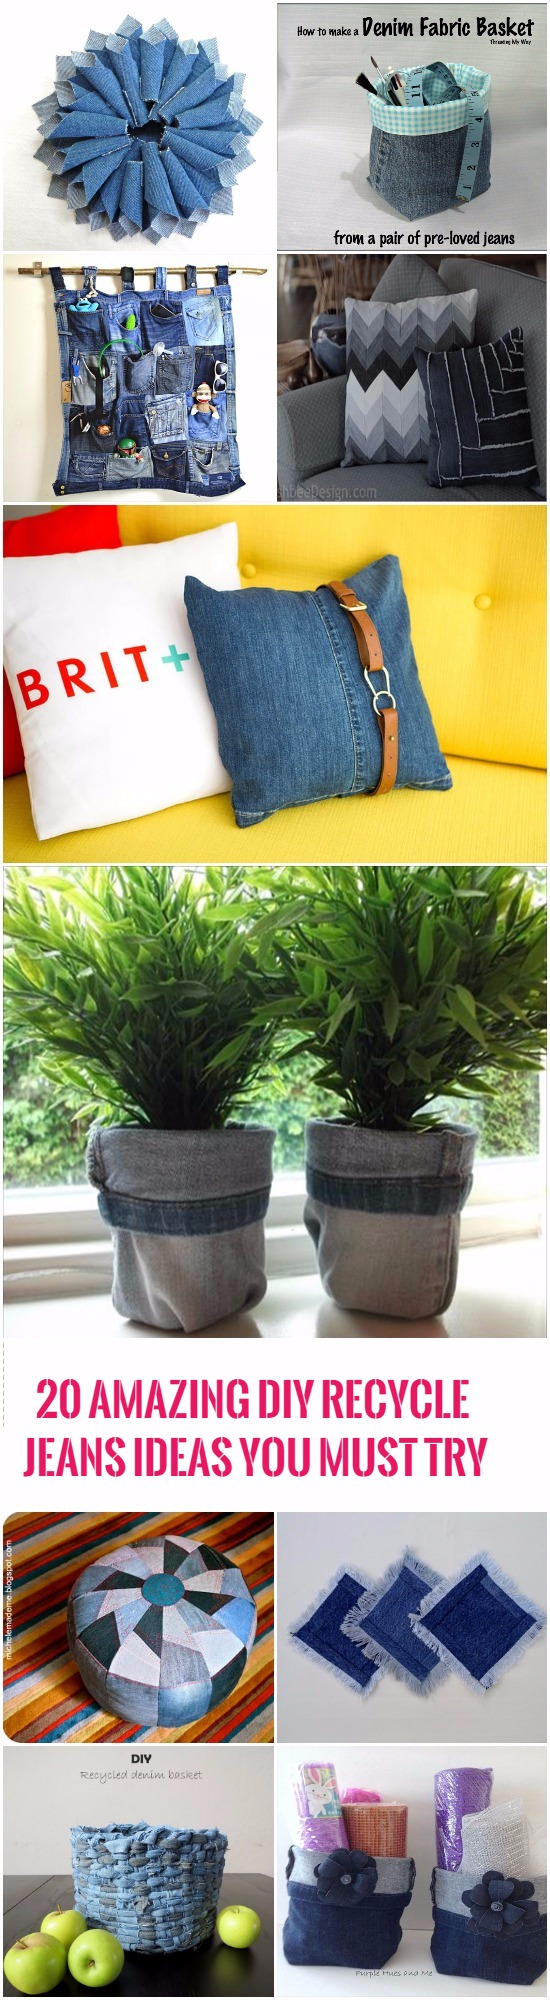 21 Amazing DIY Recycle Jean Ideas You Must Try